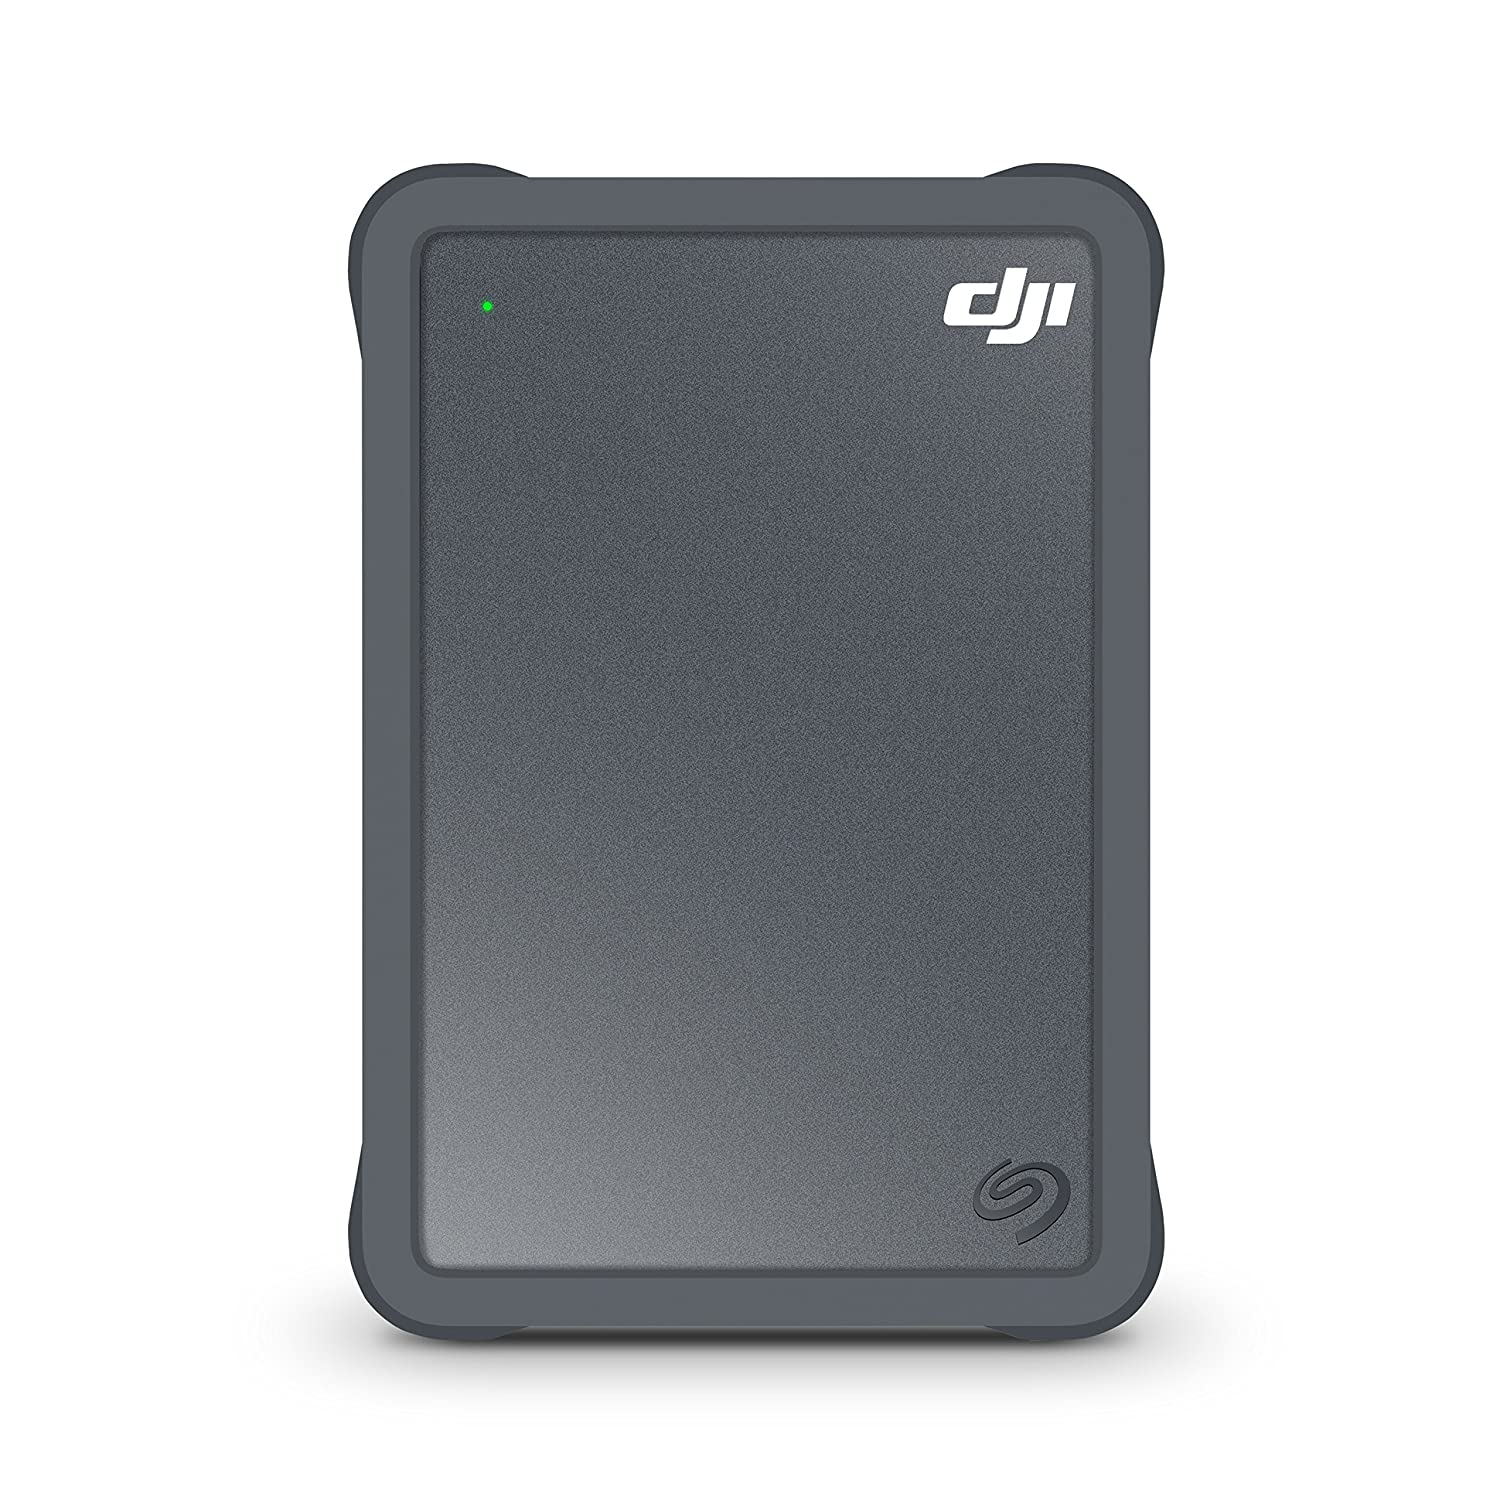 Seagate DJI Fly Drive for Drone Footage - Portable Drive with Micro SD Card Slot and USB-C to USB-C cable (STGH2000400)